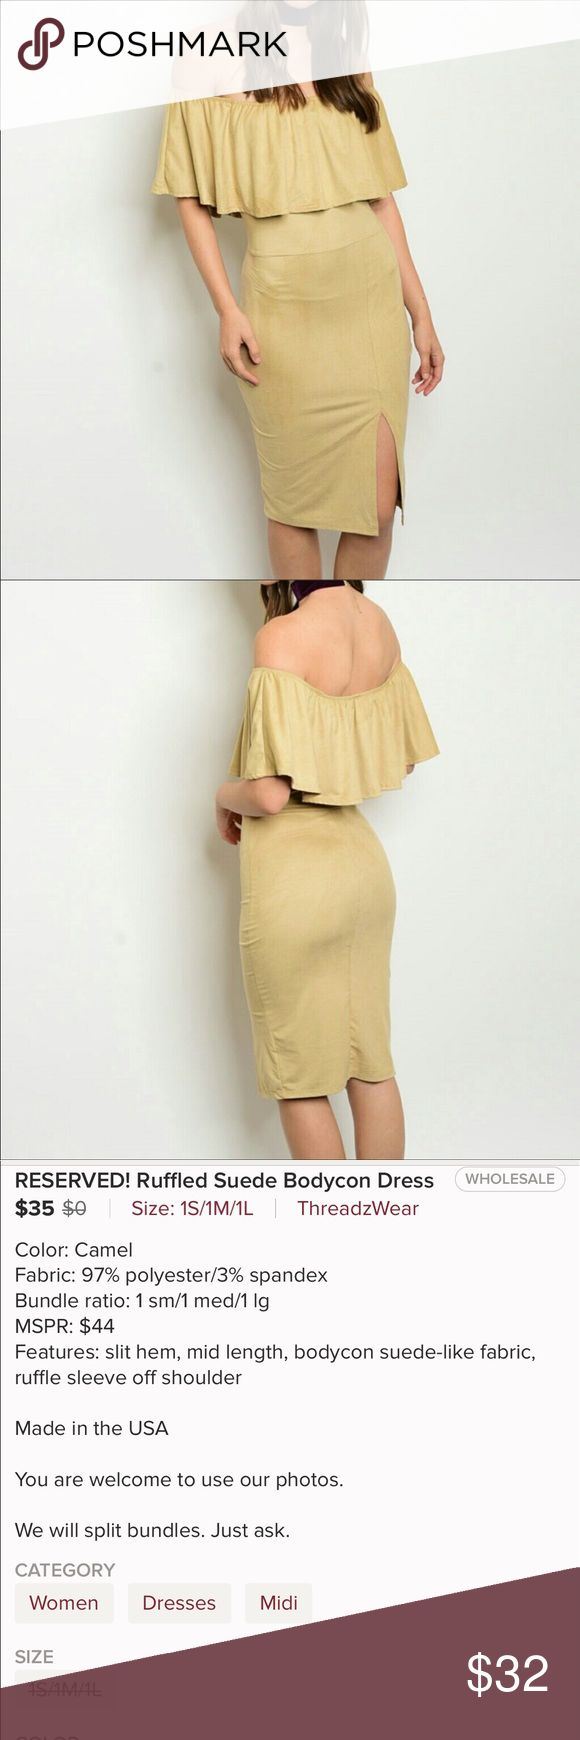 ❤️Bodycon Dress Ruffled off the shoulder Bodycon Dress in Suede-Like fabric. Camel color with. Mid-Length Slit Hem.                                                                       *97% Polyester *3% Spandex ❌TRADES •PRICE FIRM Threadzwear Dresses Midi